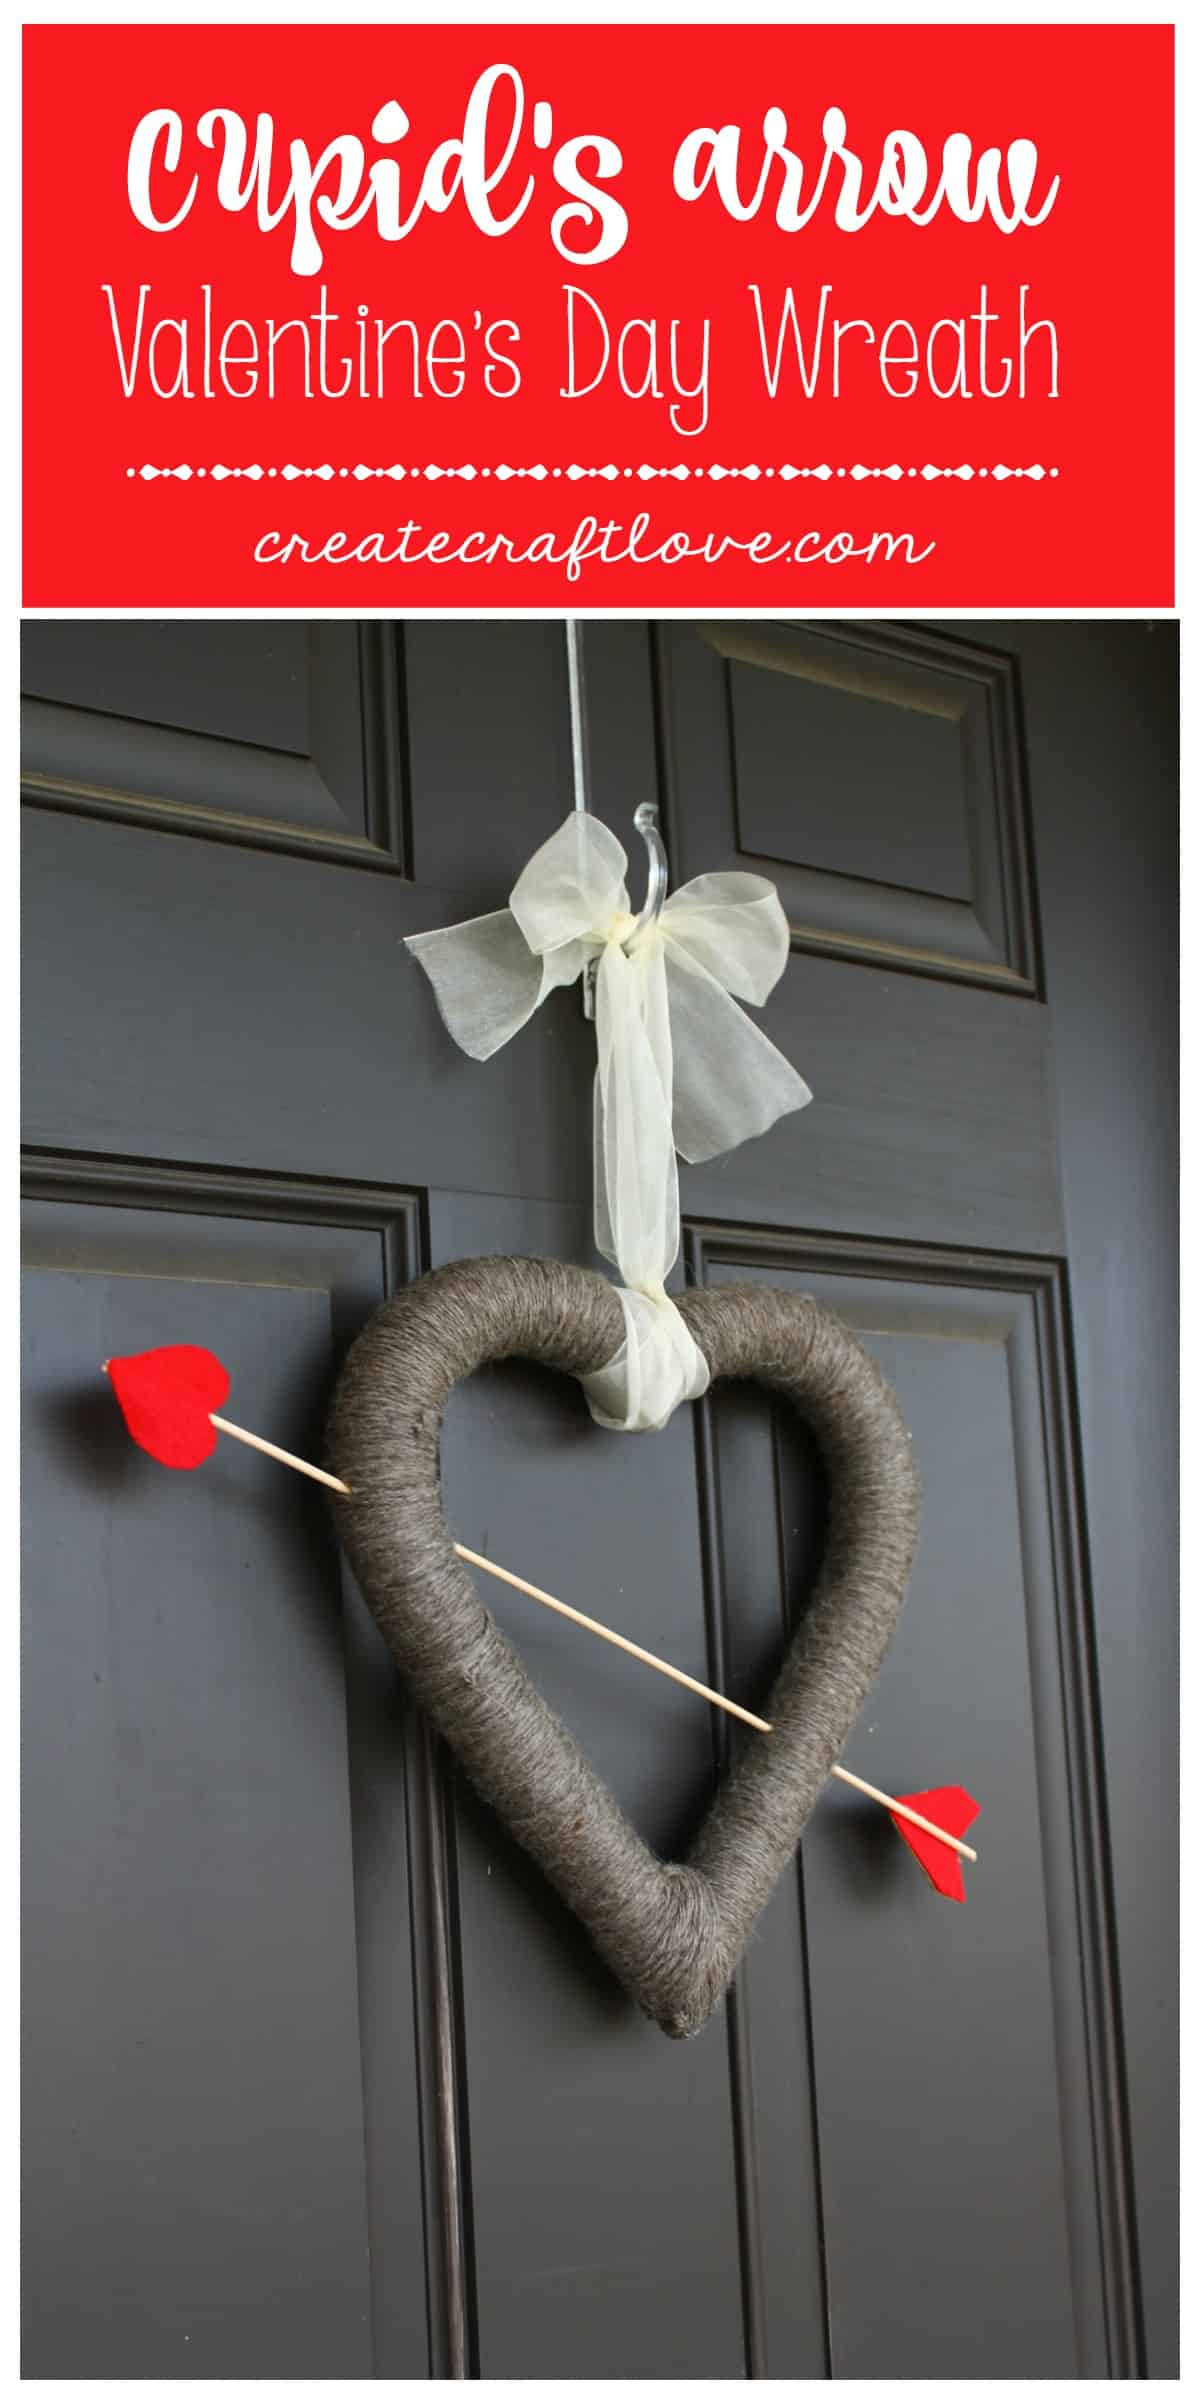 I love the rustic chic look of this Cupid's Arrow Valentine's Day Wreath!